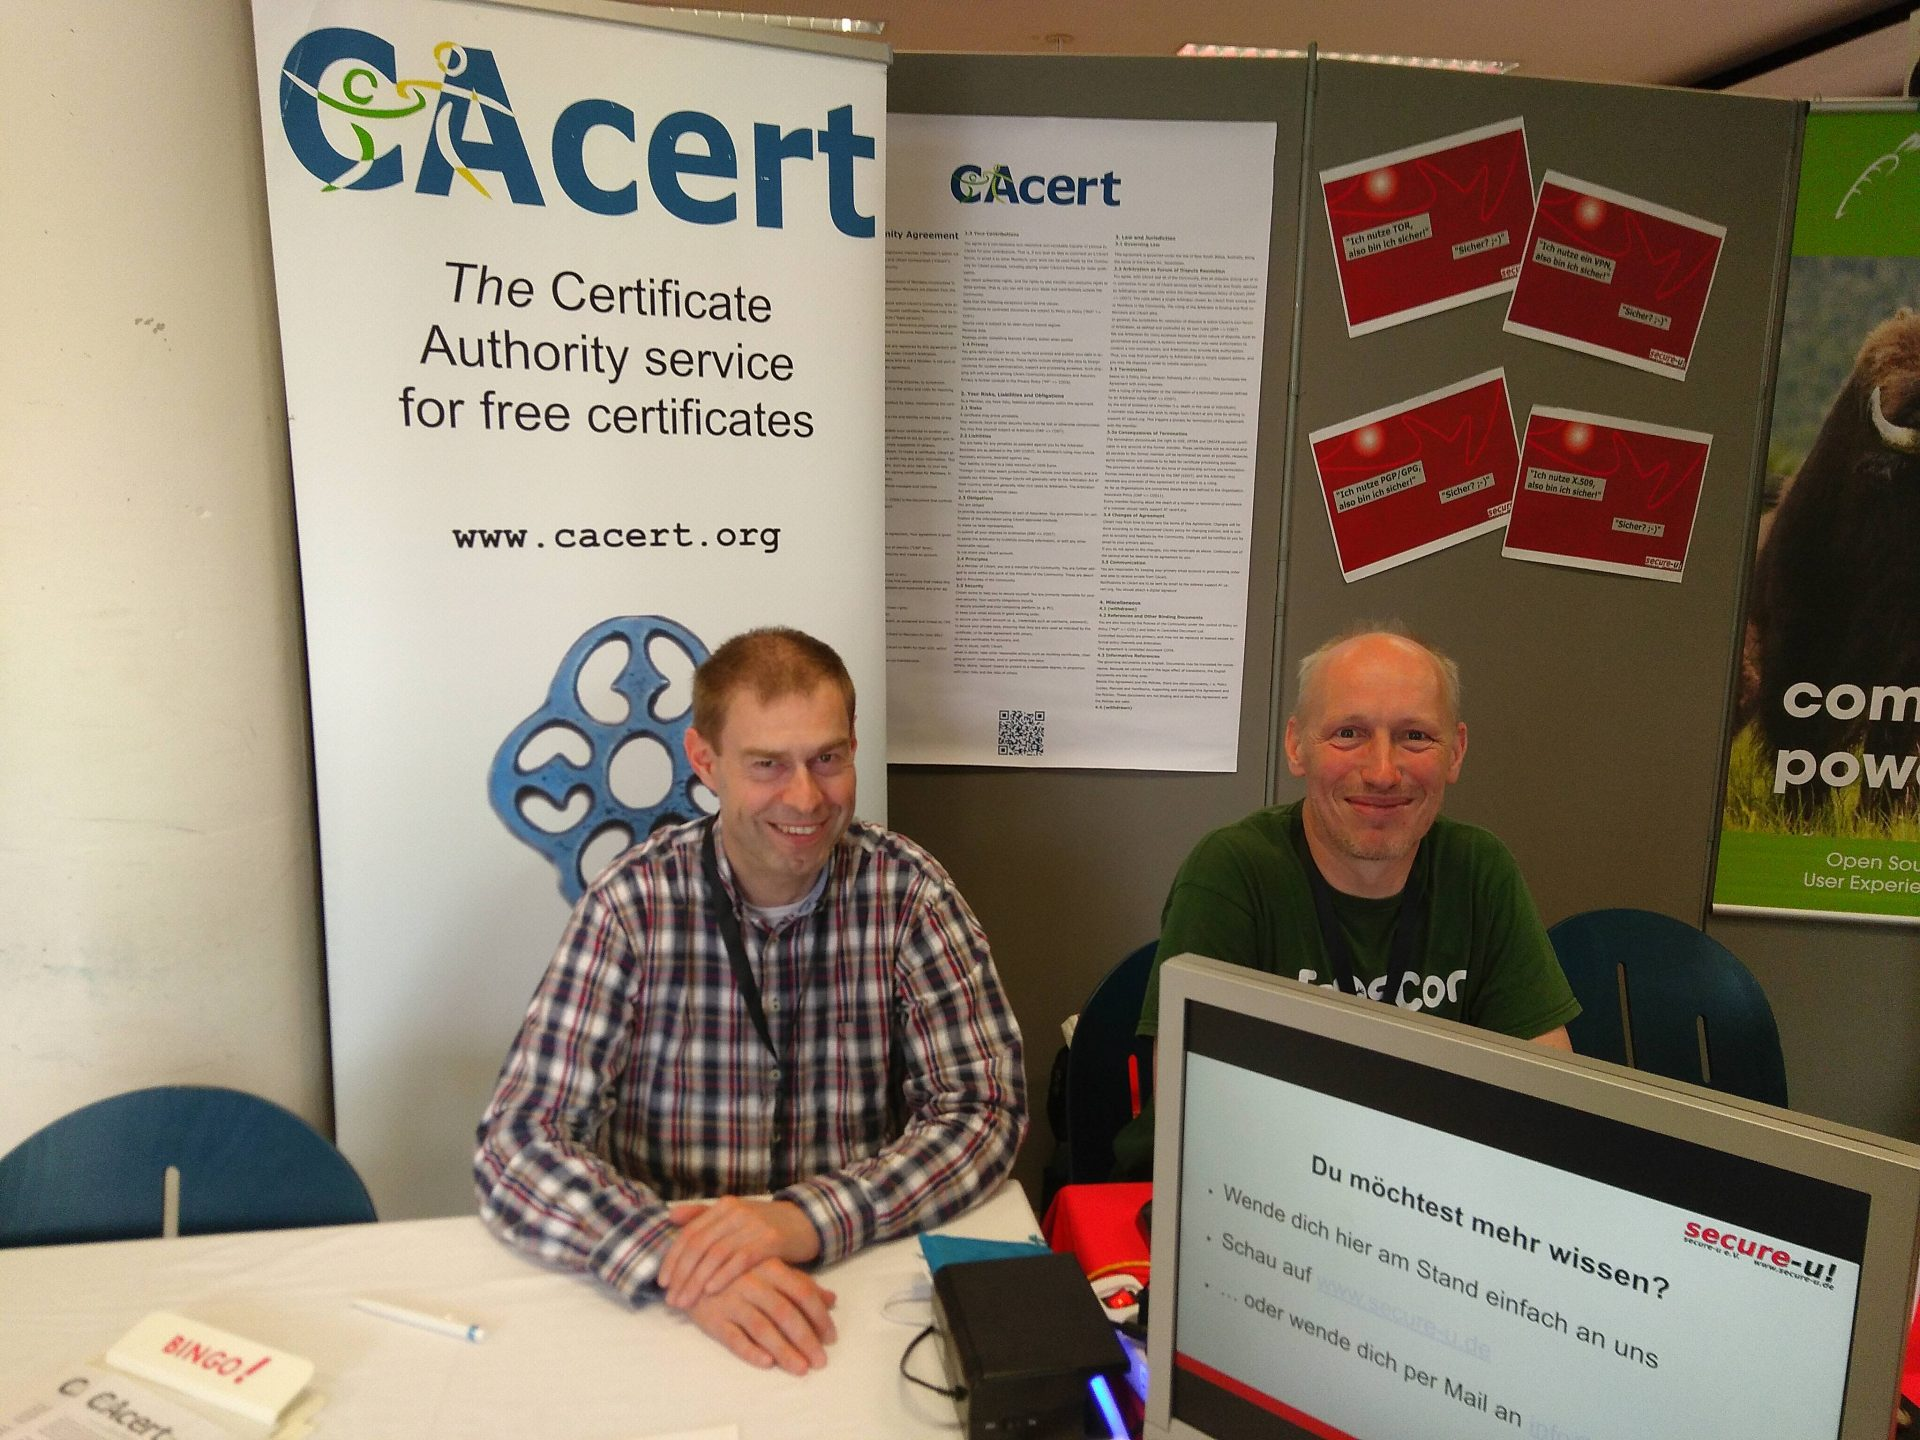 CAcert staff talking to interested public and giving assurances at FrOSCon booth